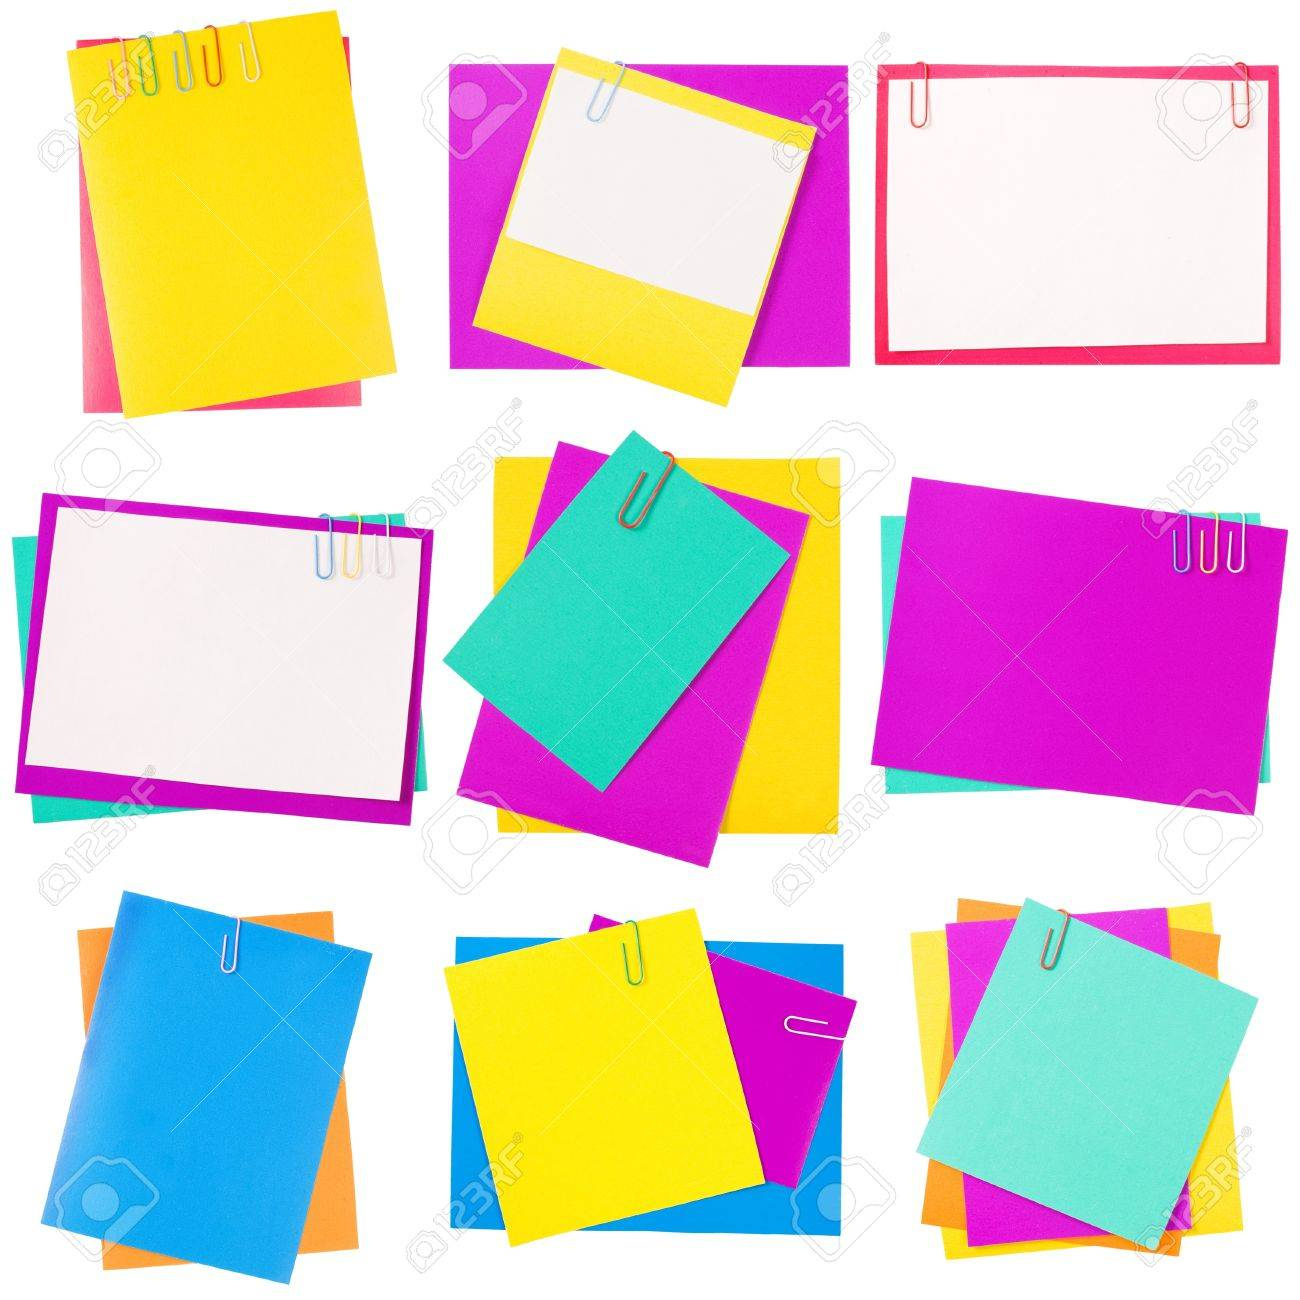 Colour paper with a paper clip Stock Photo - 9457918